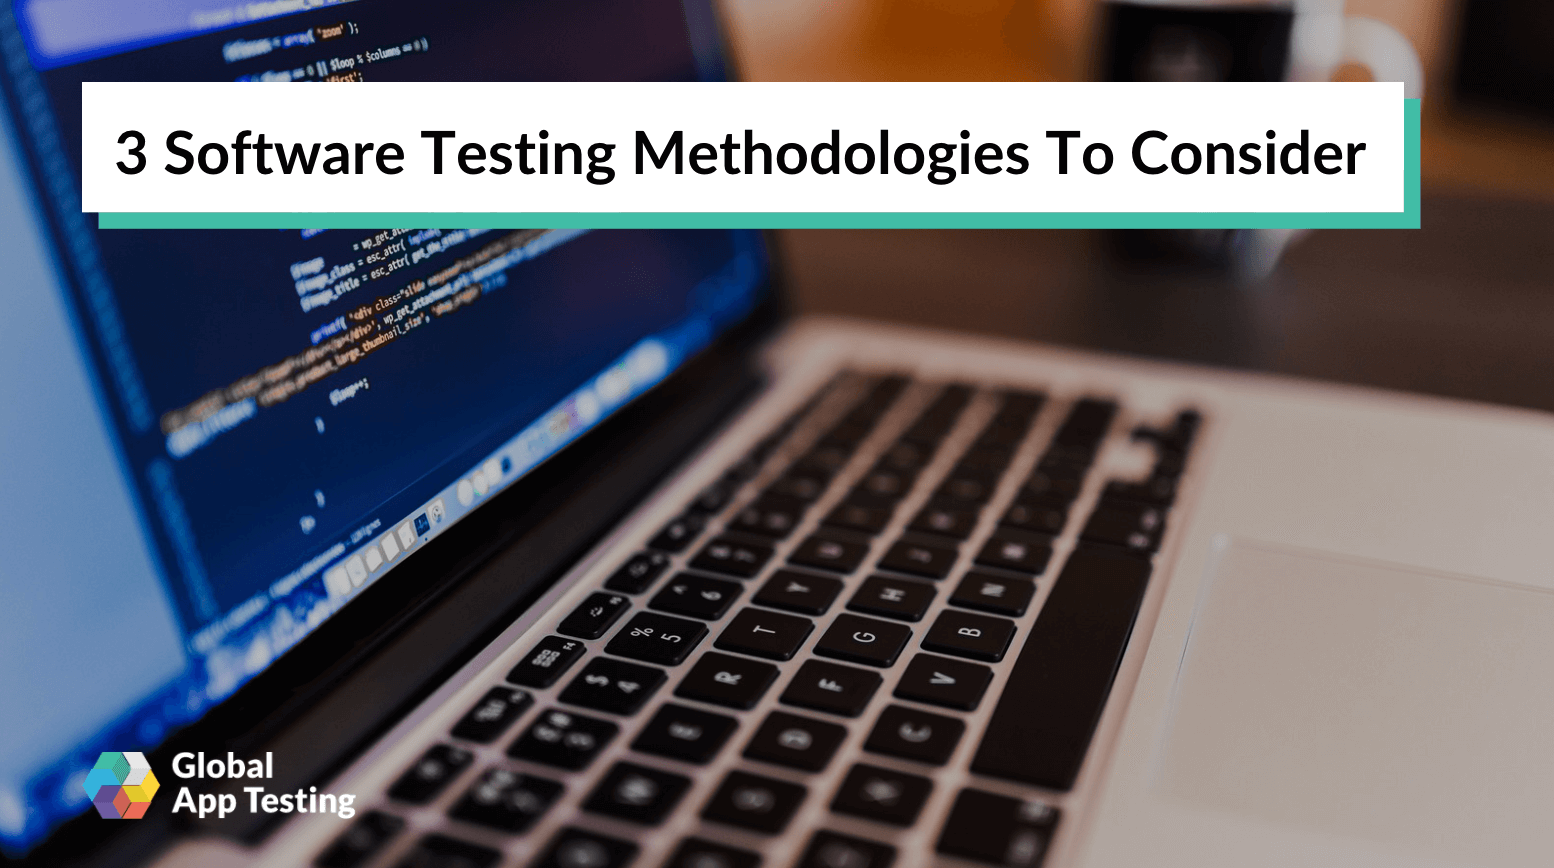 3 Software Testing Methodologies To Consider